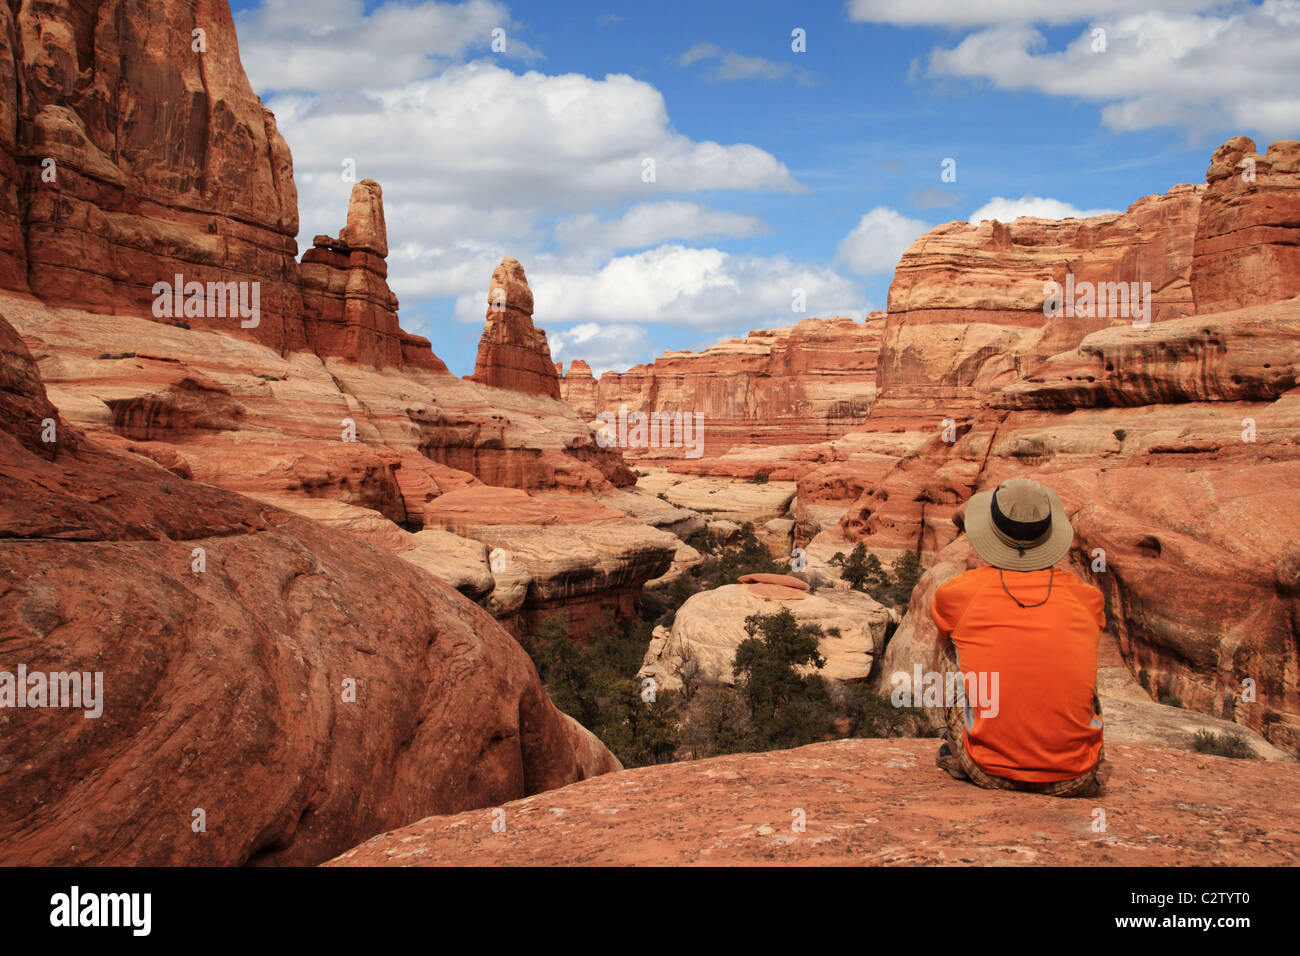 a sitting man admires the view in Canyonlands National Park - Stock Image